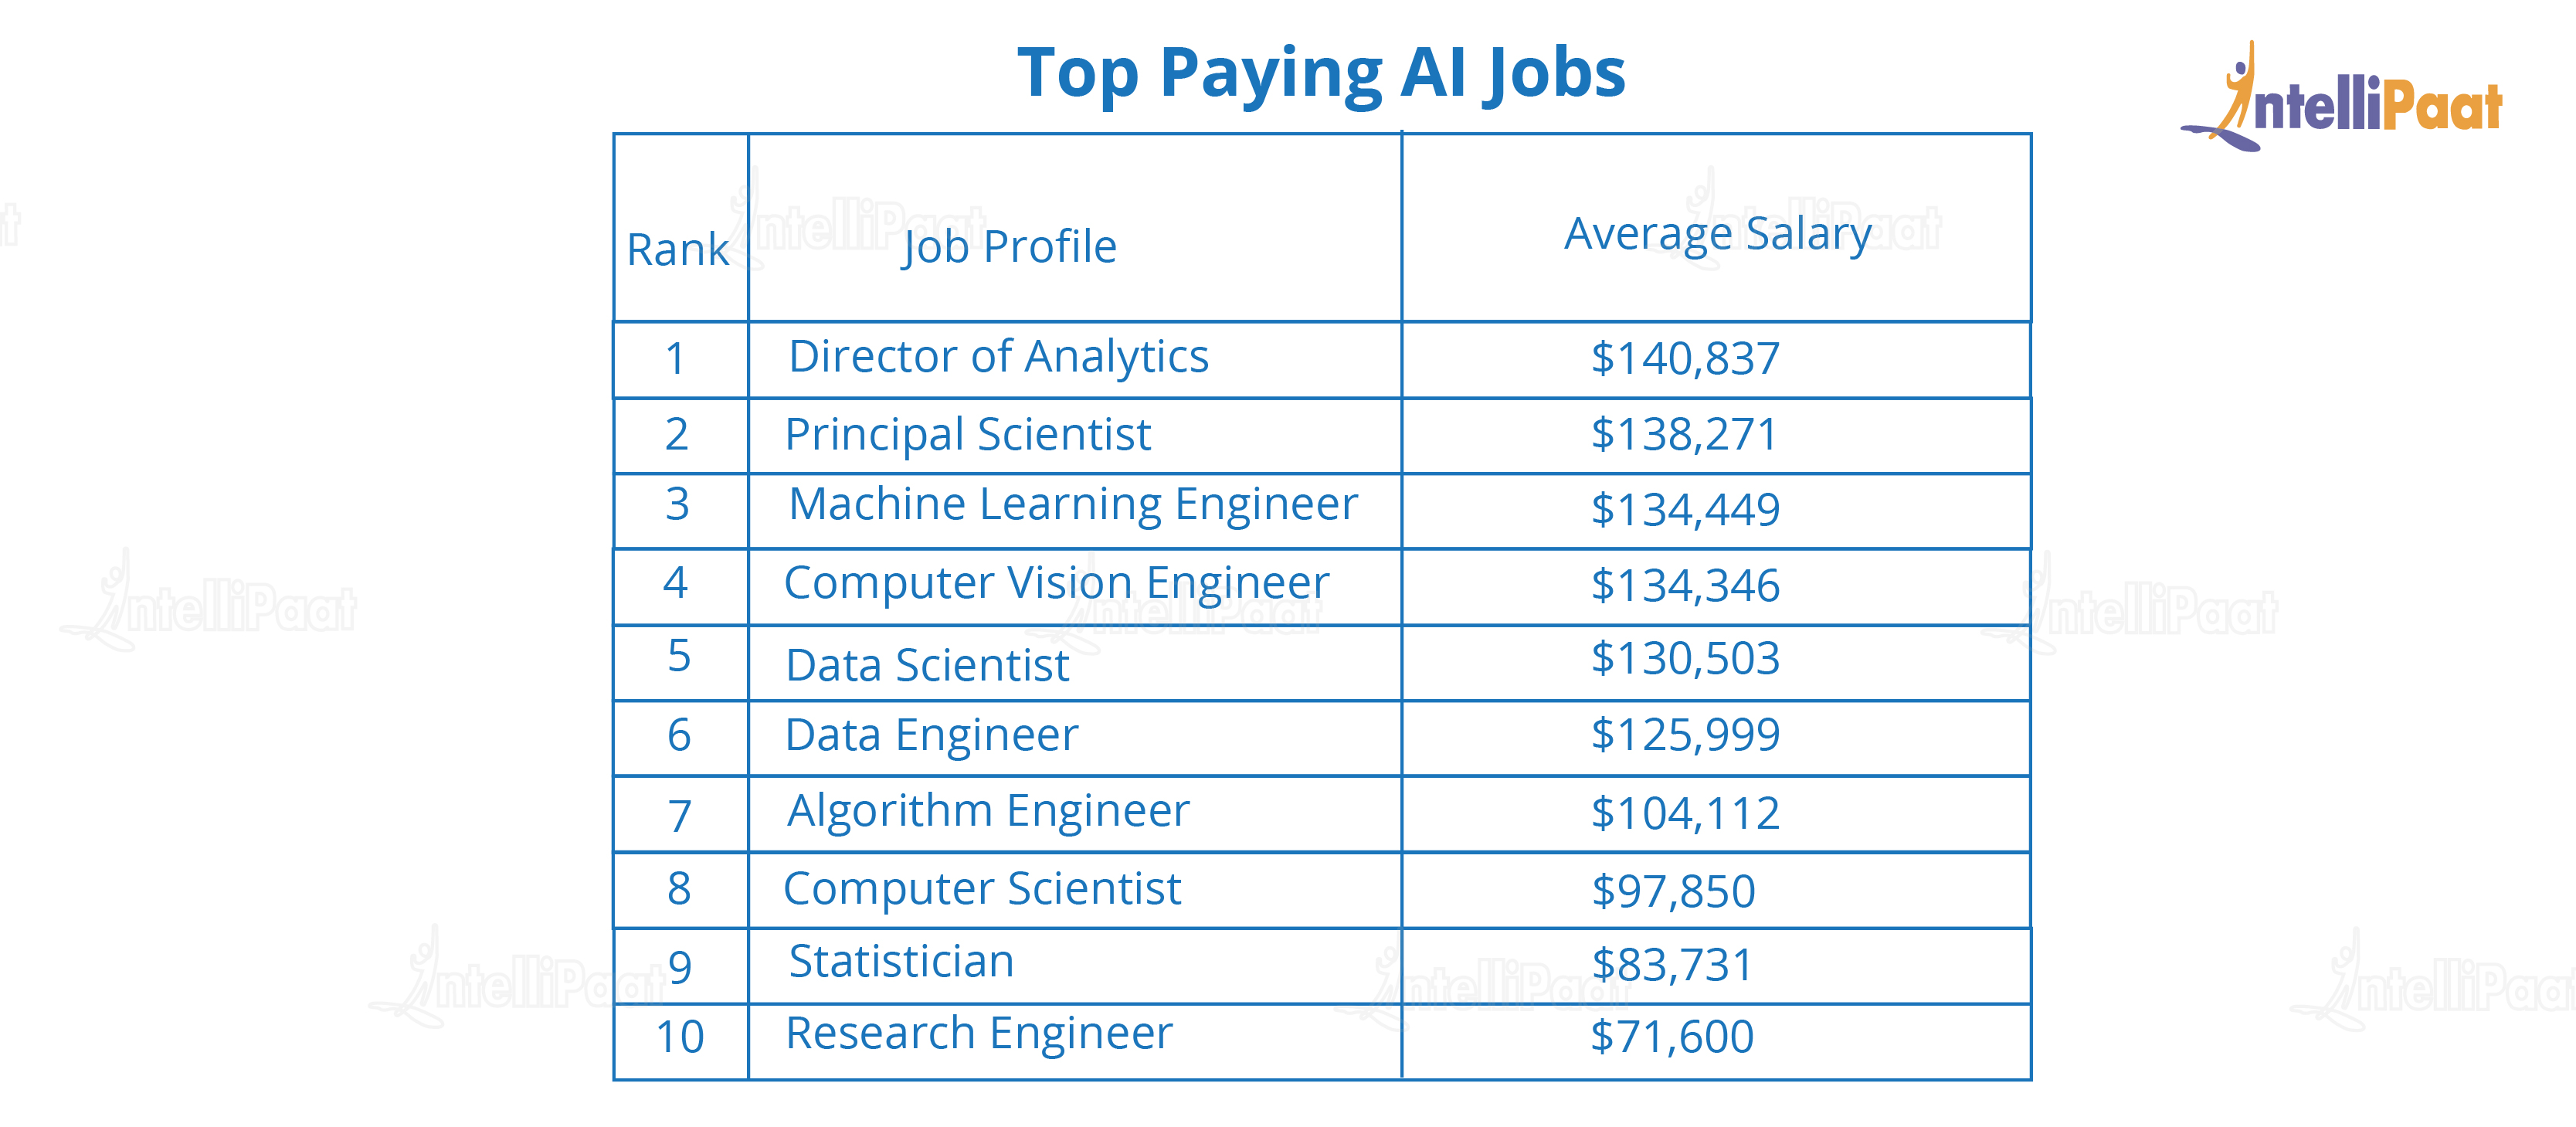 Top Paying AI Jobs